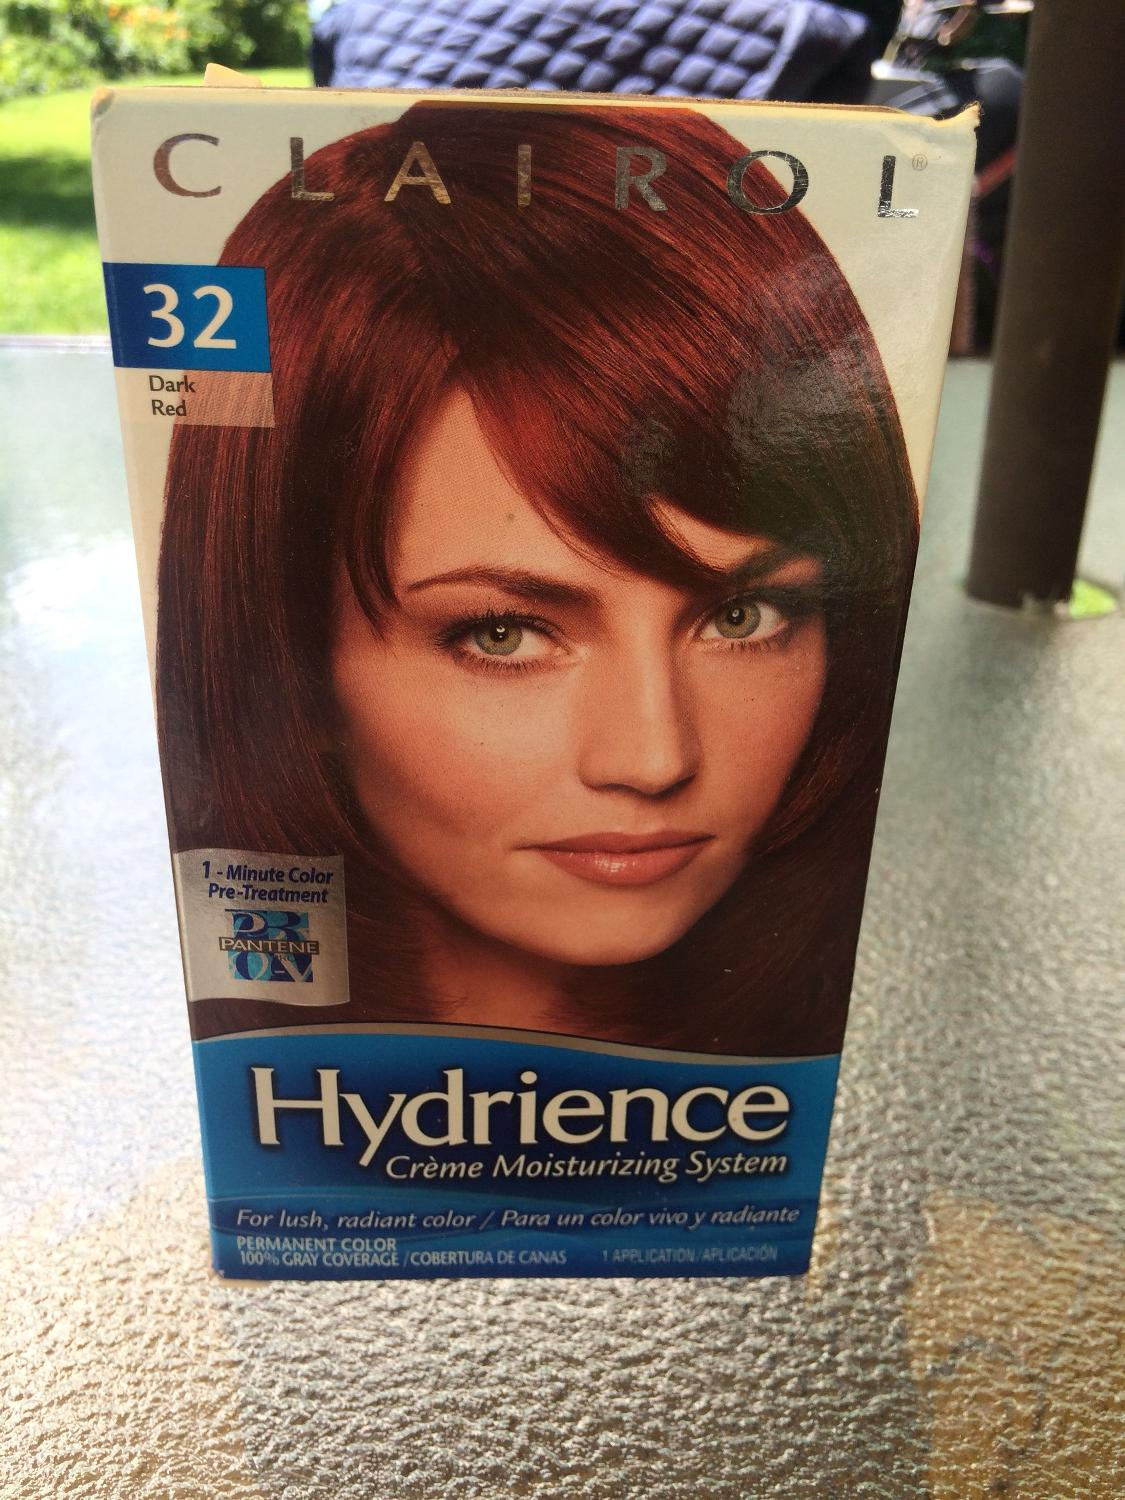 Best Bnib Dark Red Hair Colour Clairol Hydrience For Sale In